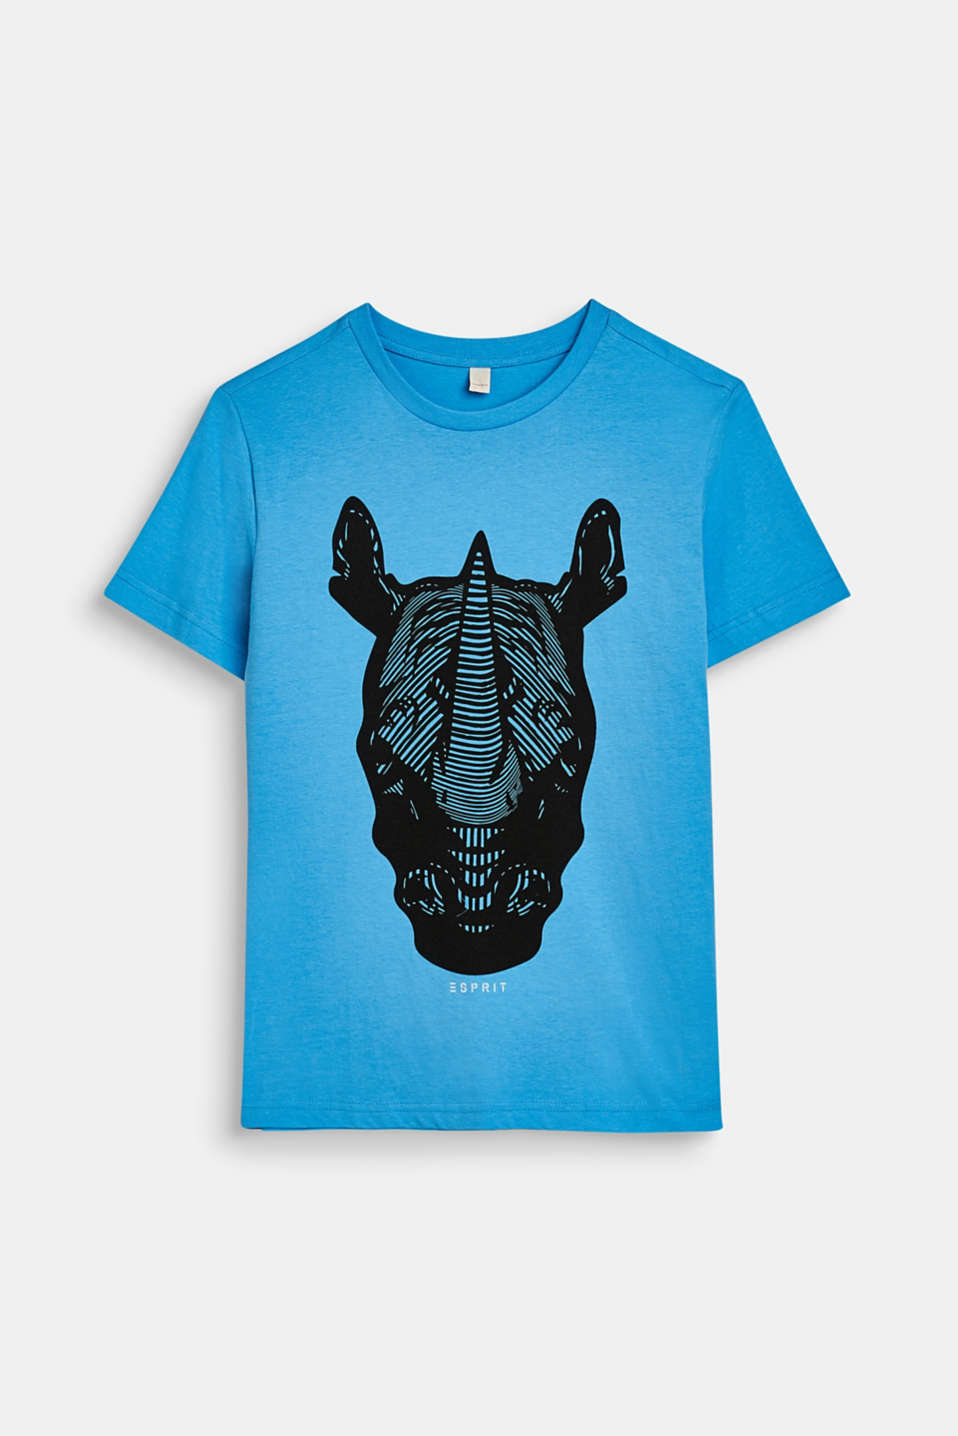 Esprit - Top with a rhino print, 100% cotton